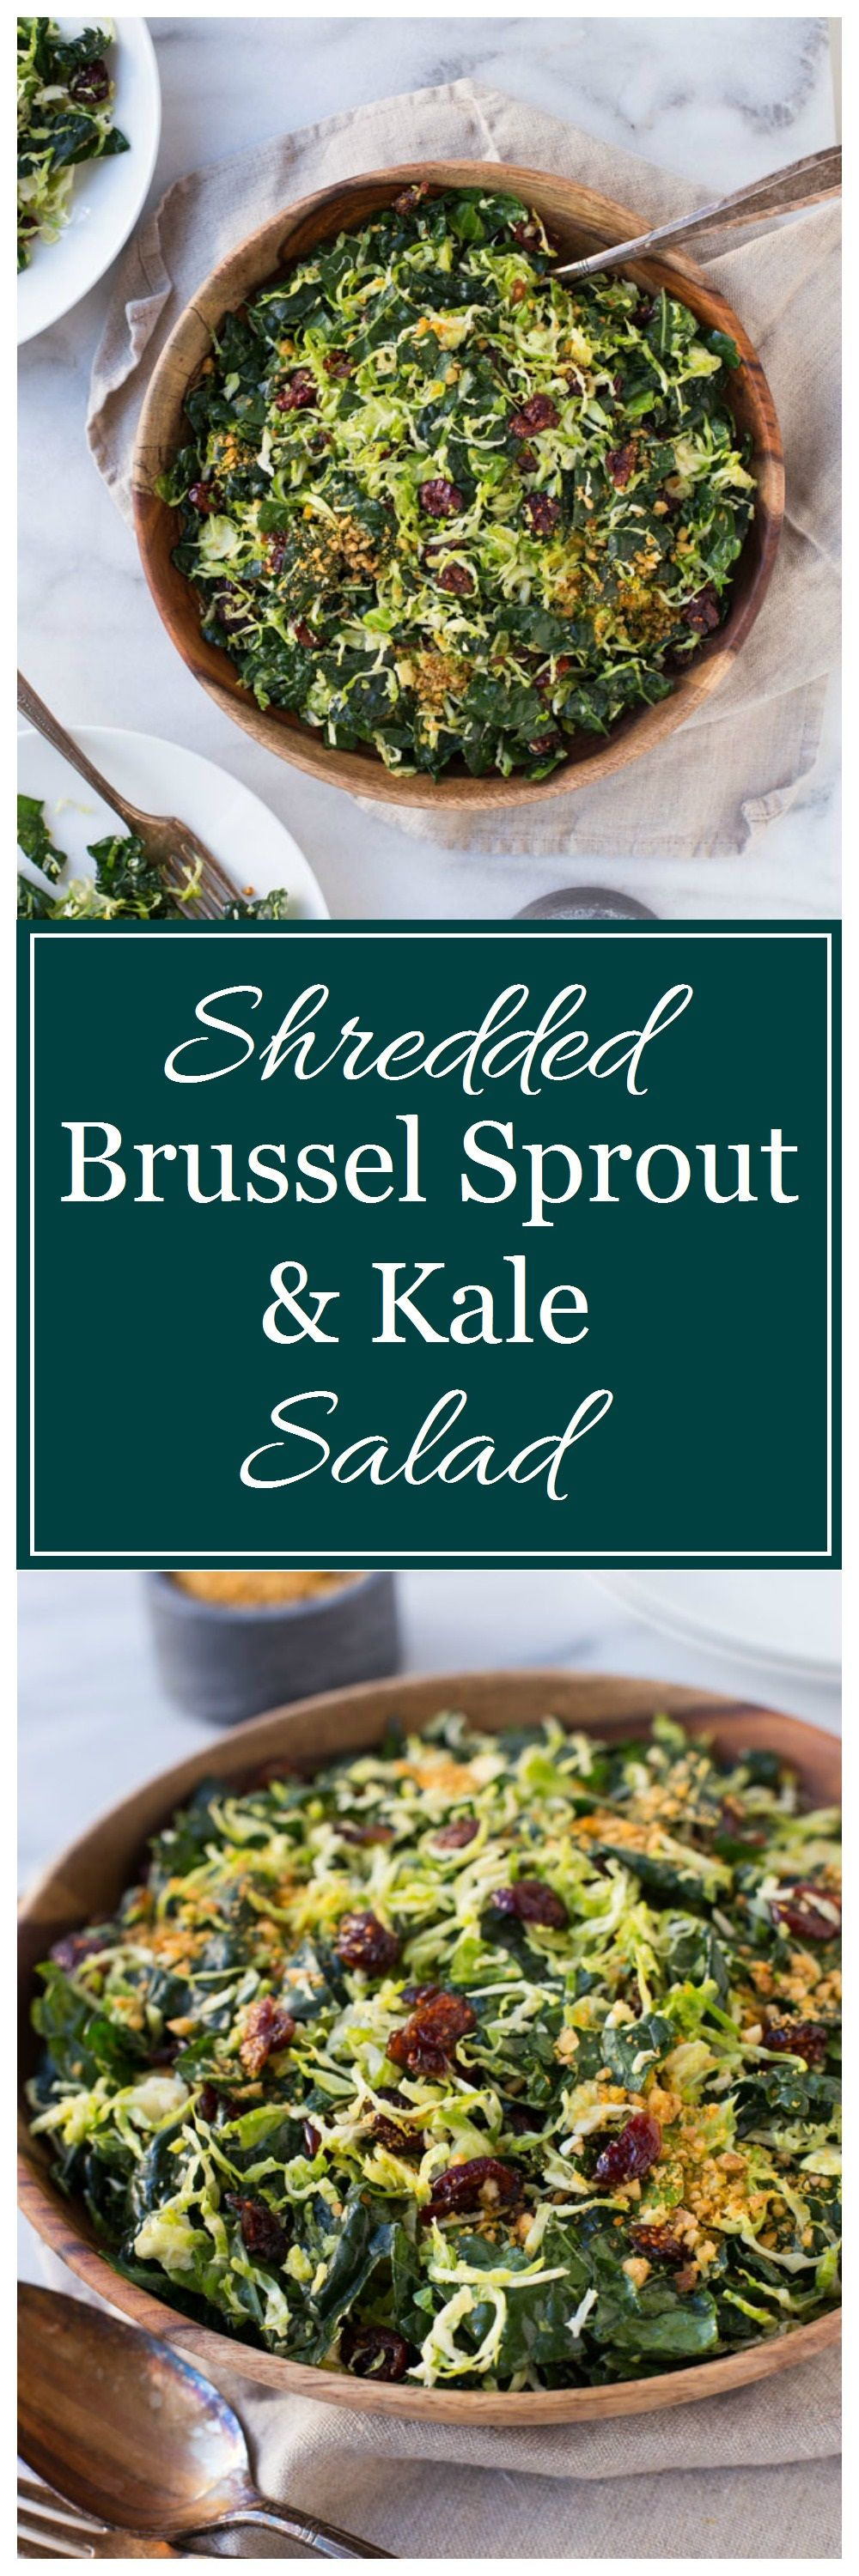 Whole Foods Kale And Brussel Sprout Salad